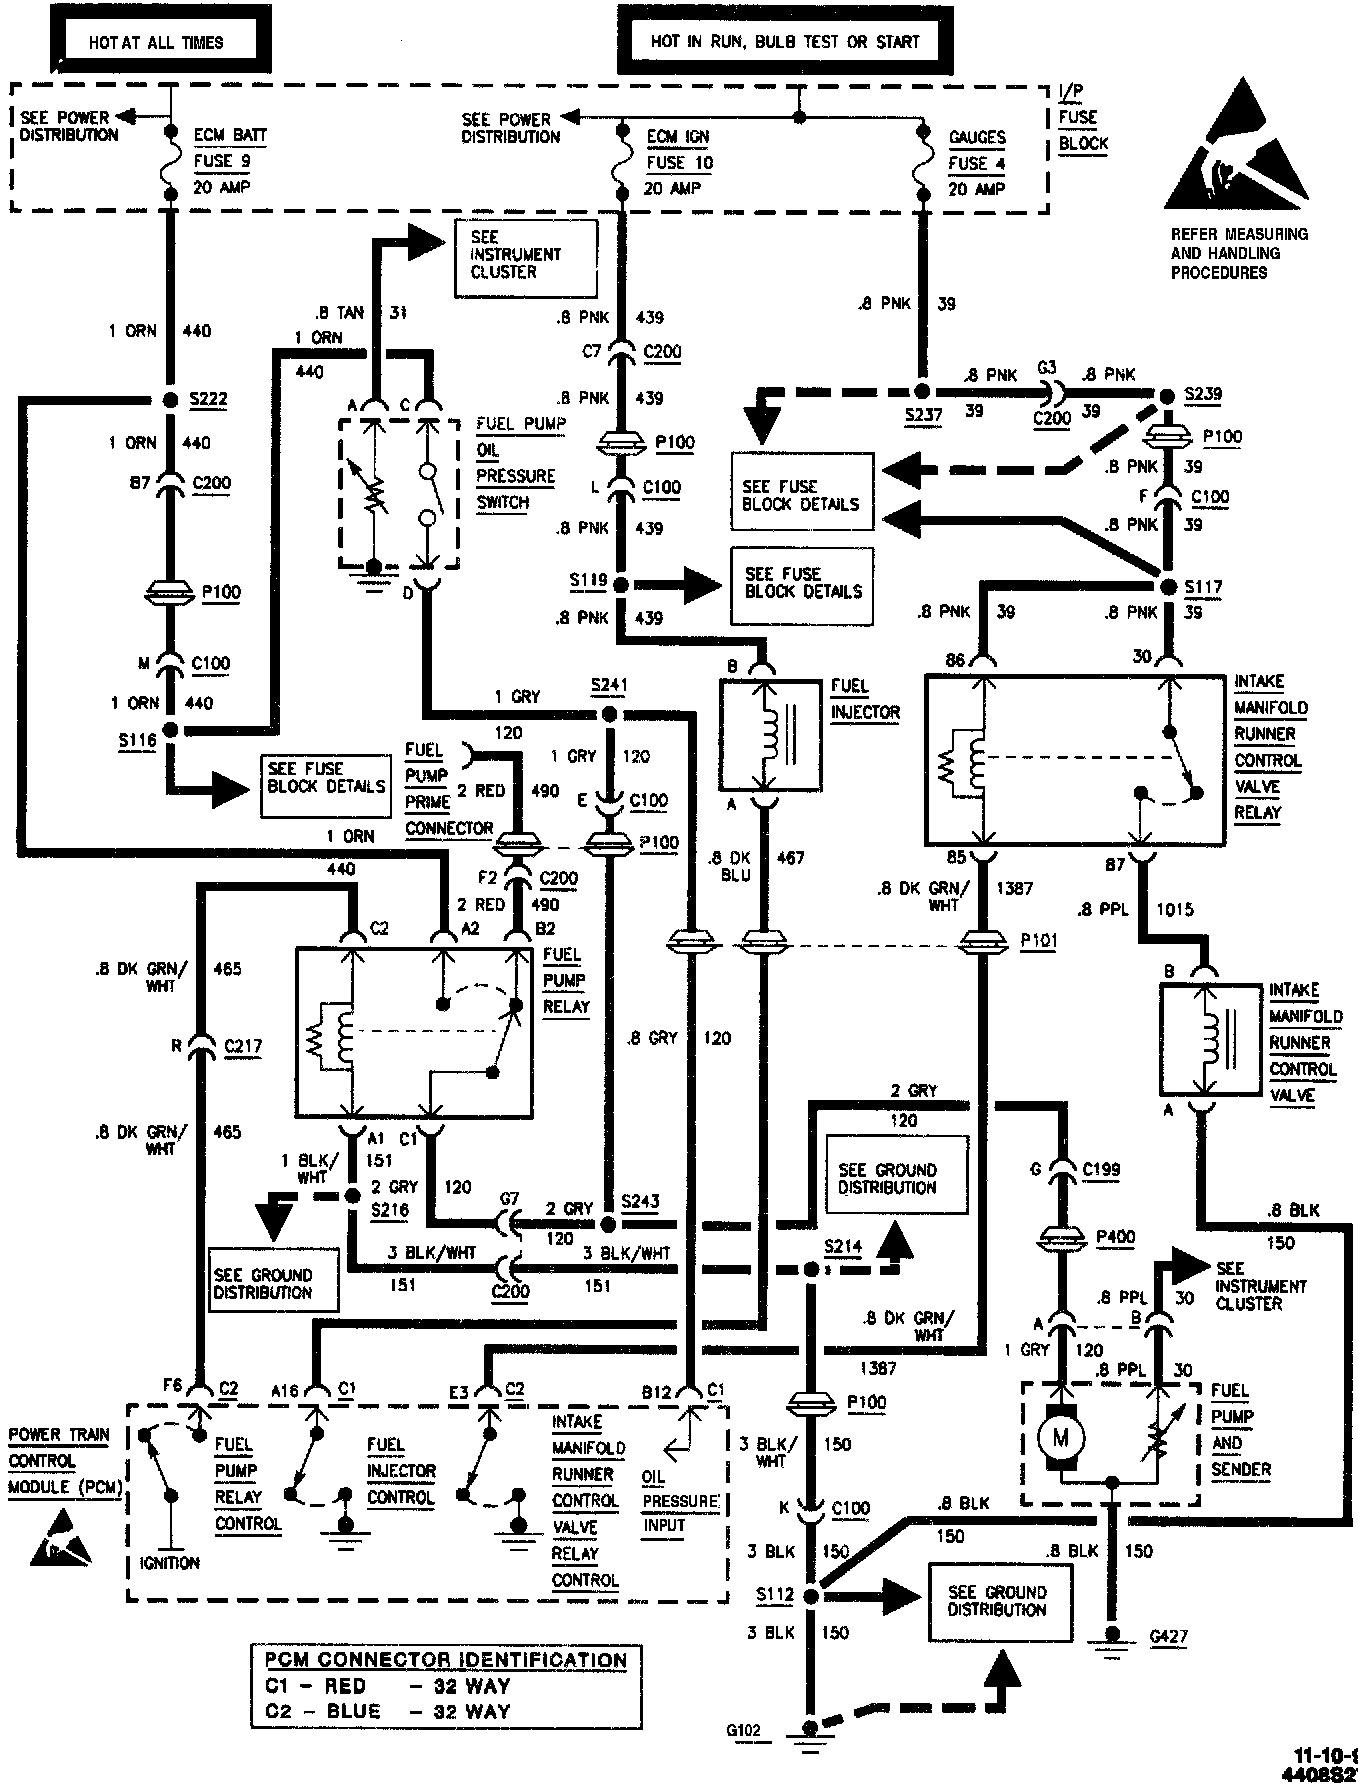 1997 chevy s10 electrical wiring diagram wiring library 4x4 chevy s10 wiring diagram example electrical wiring diagram u2022 rh emilyalbert co 1982 chevy truck